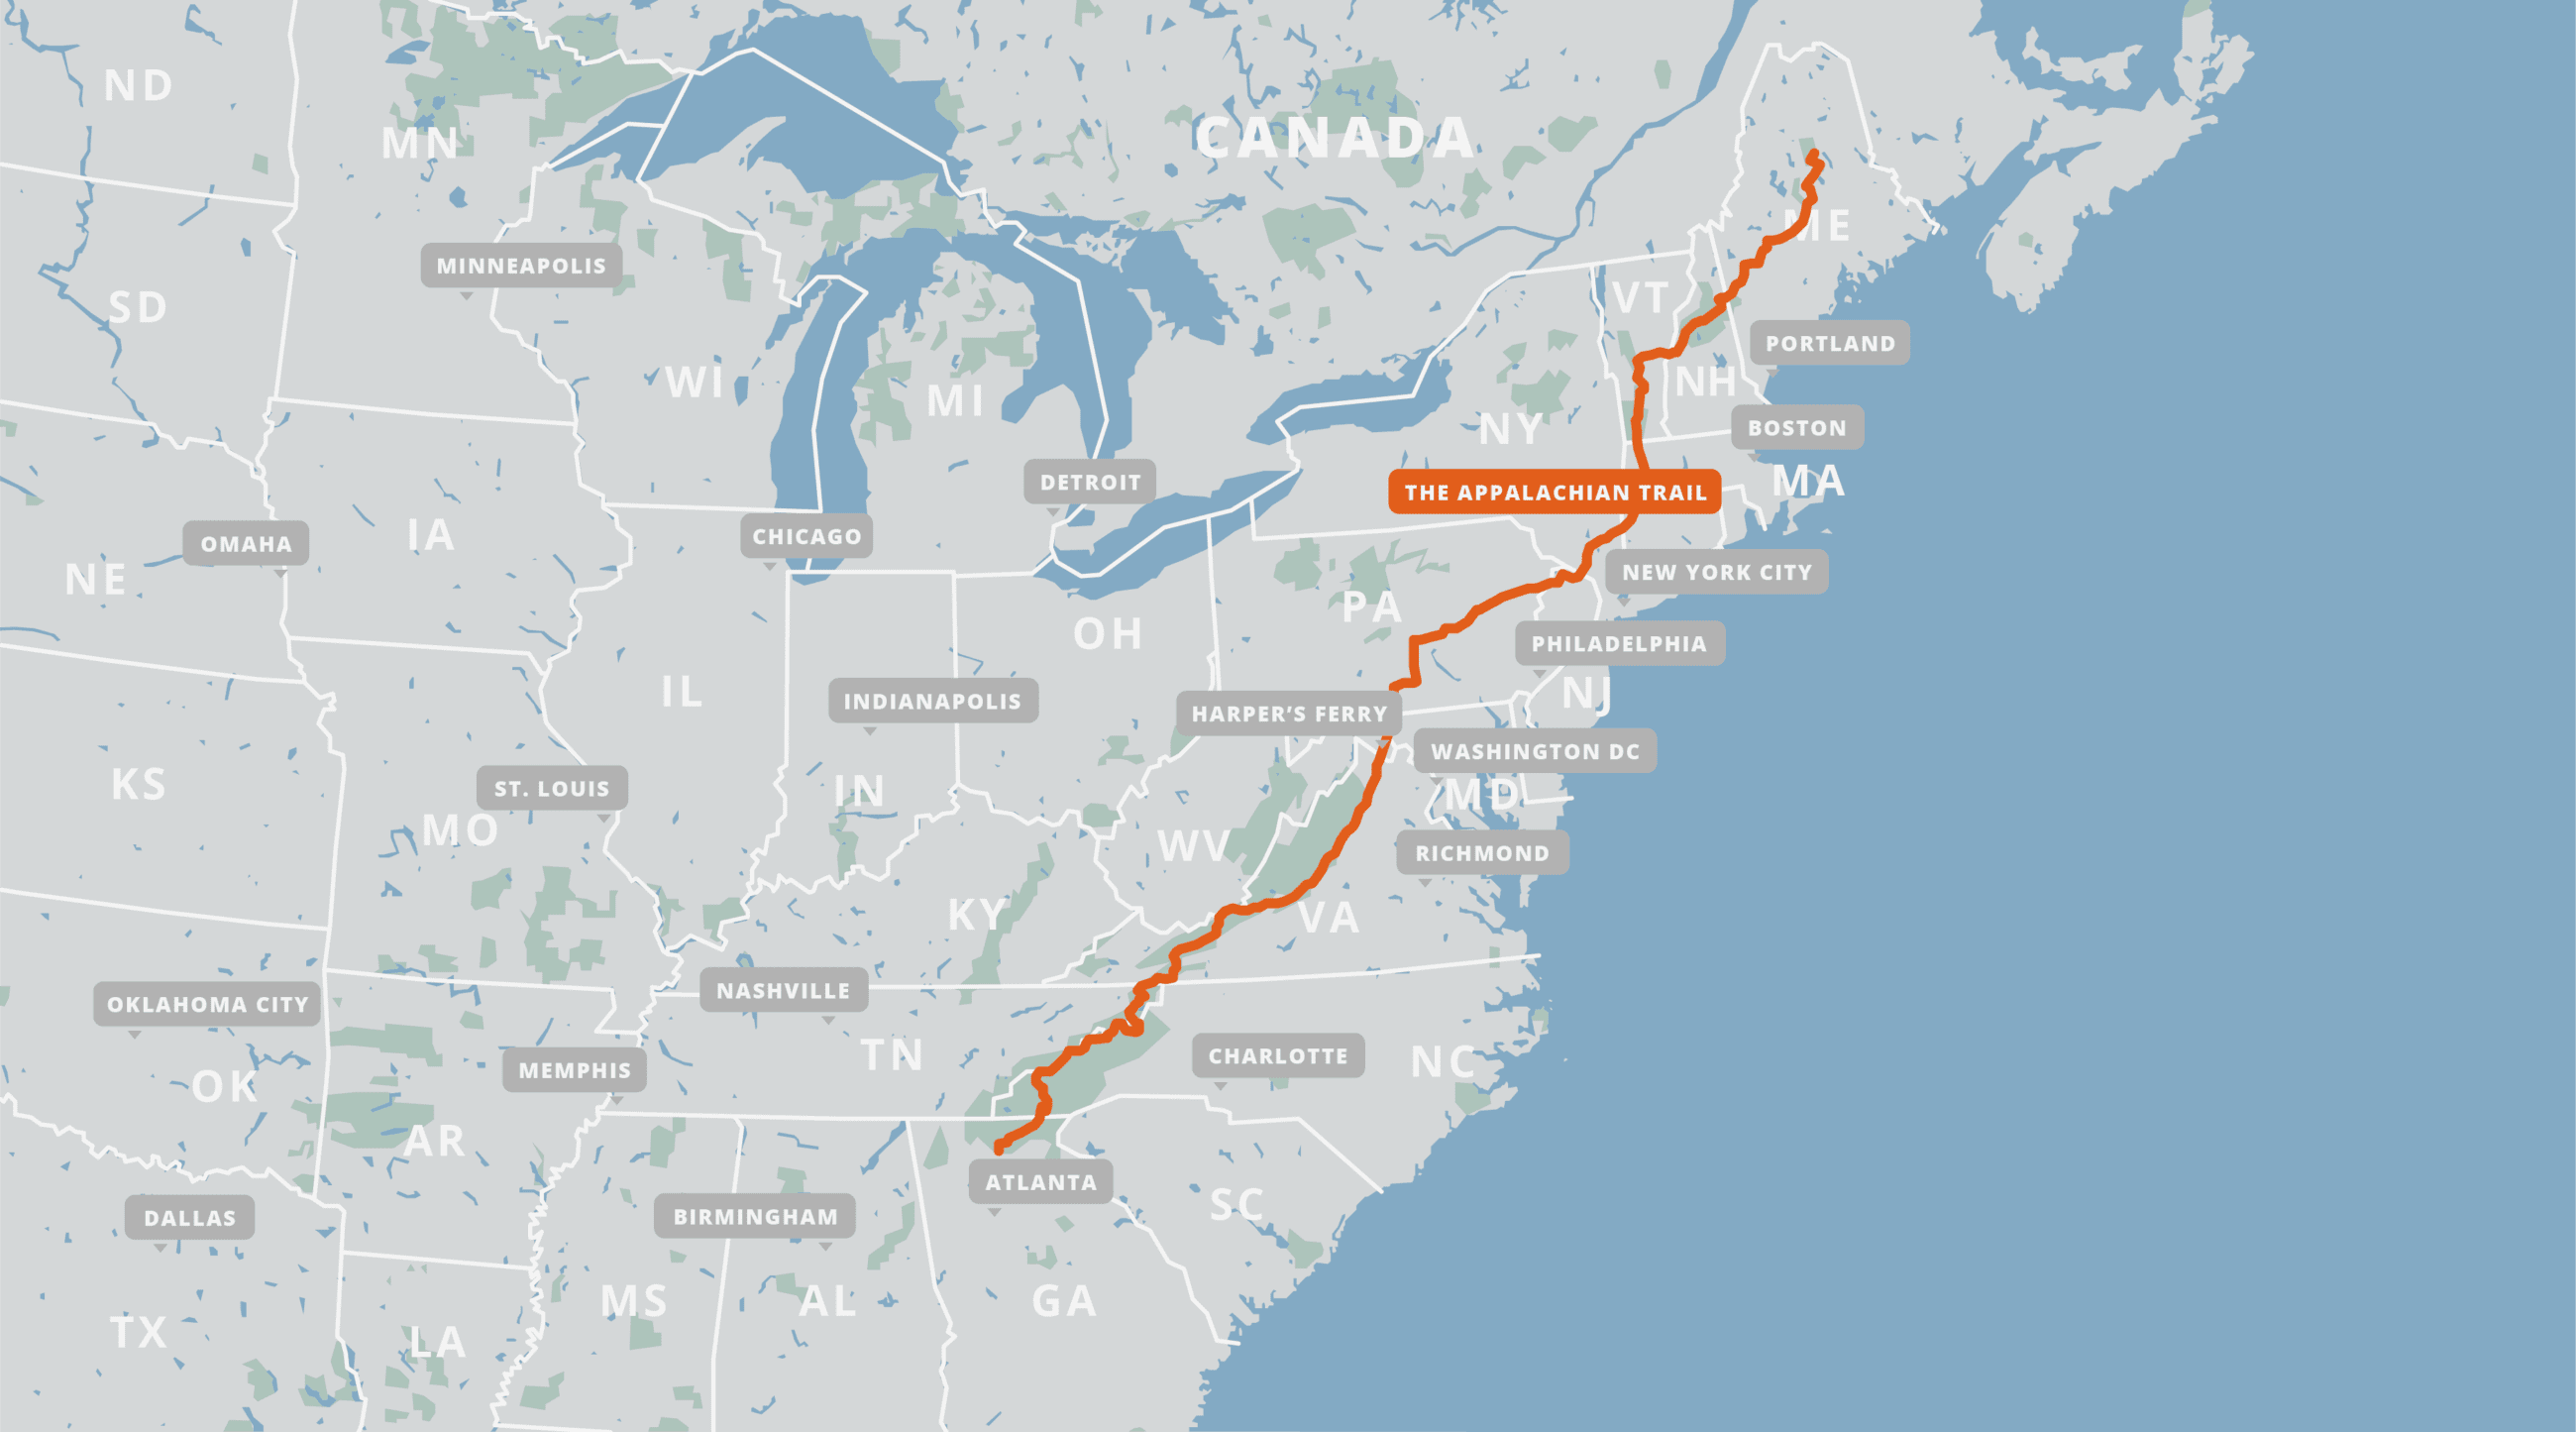 A map of the Appalachian Trail.